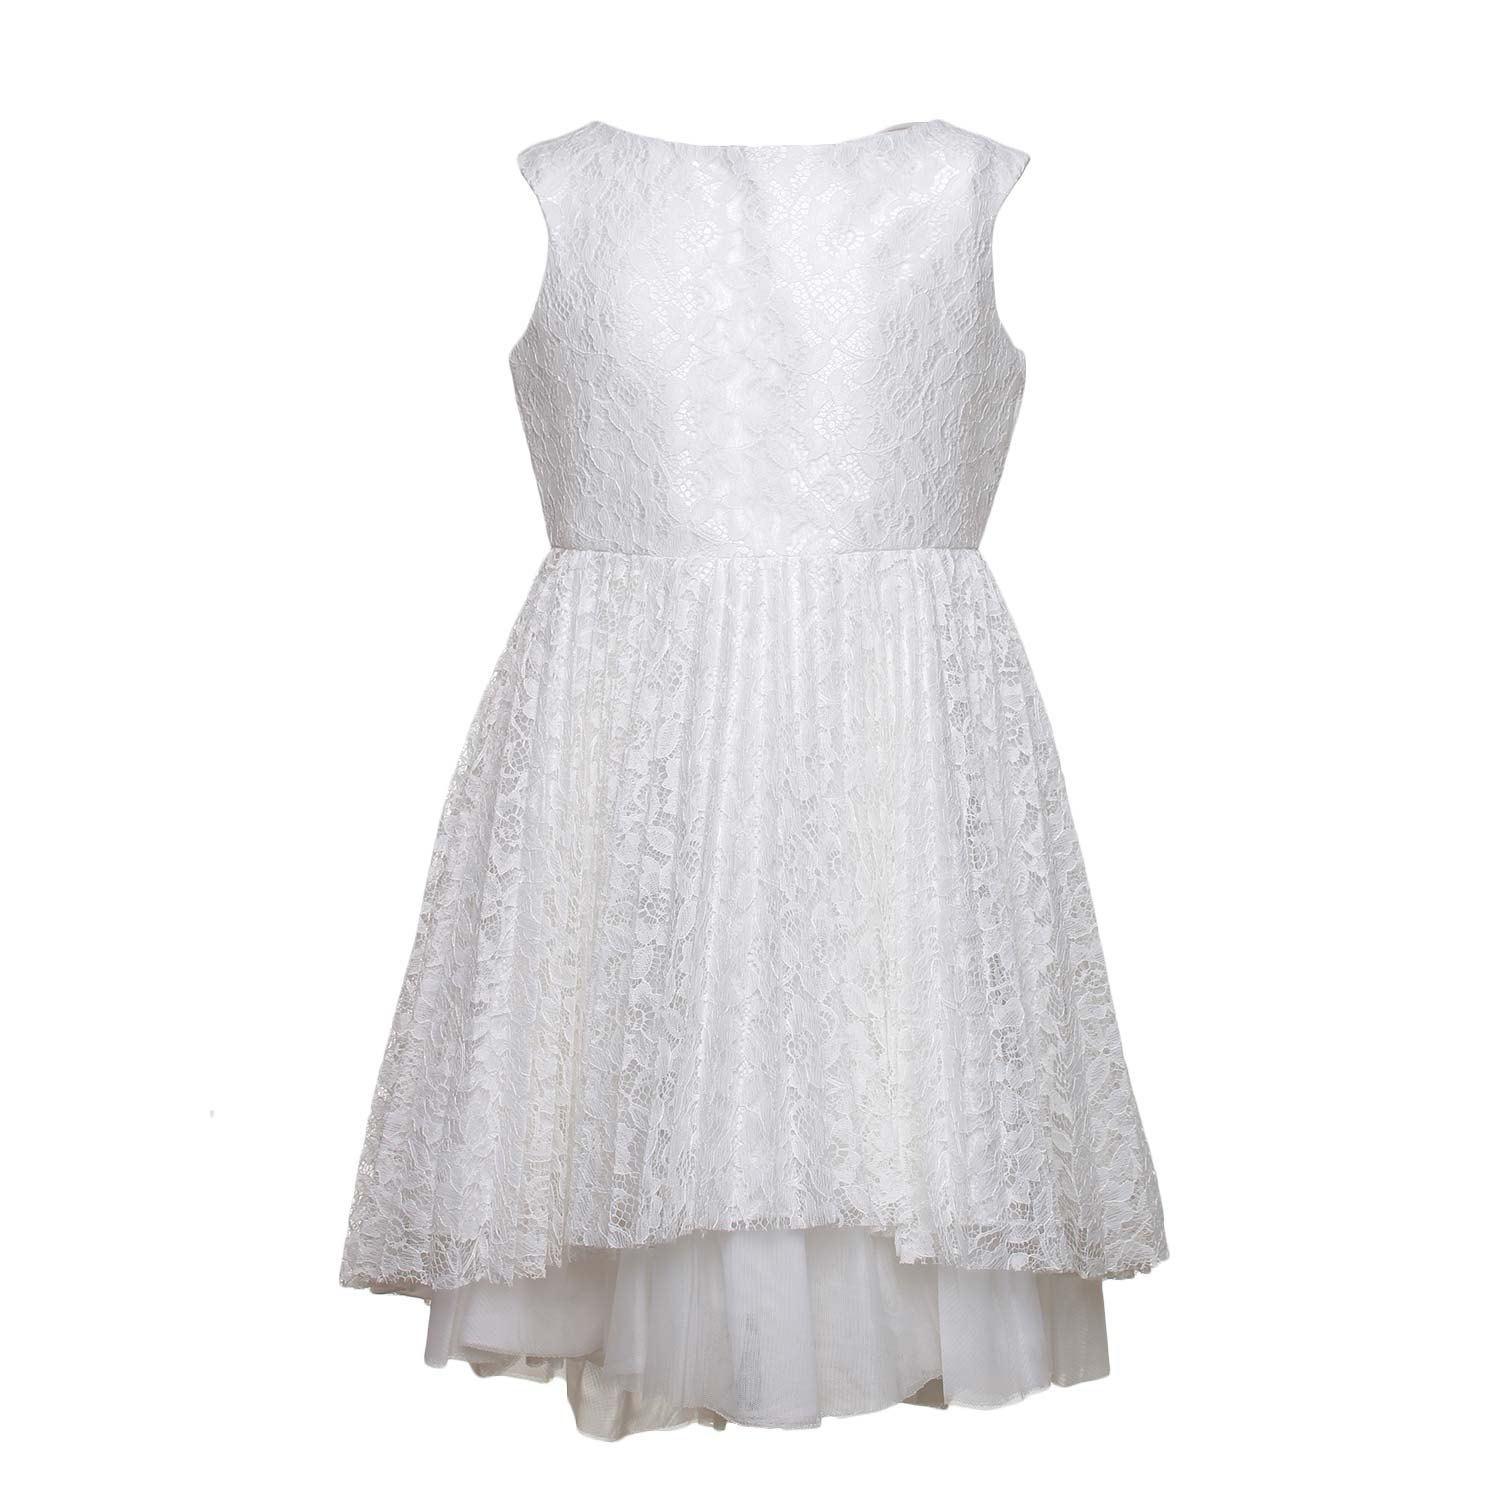 new arrival 148a4 e7cca Abito In Pizzo Bambina Teenager